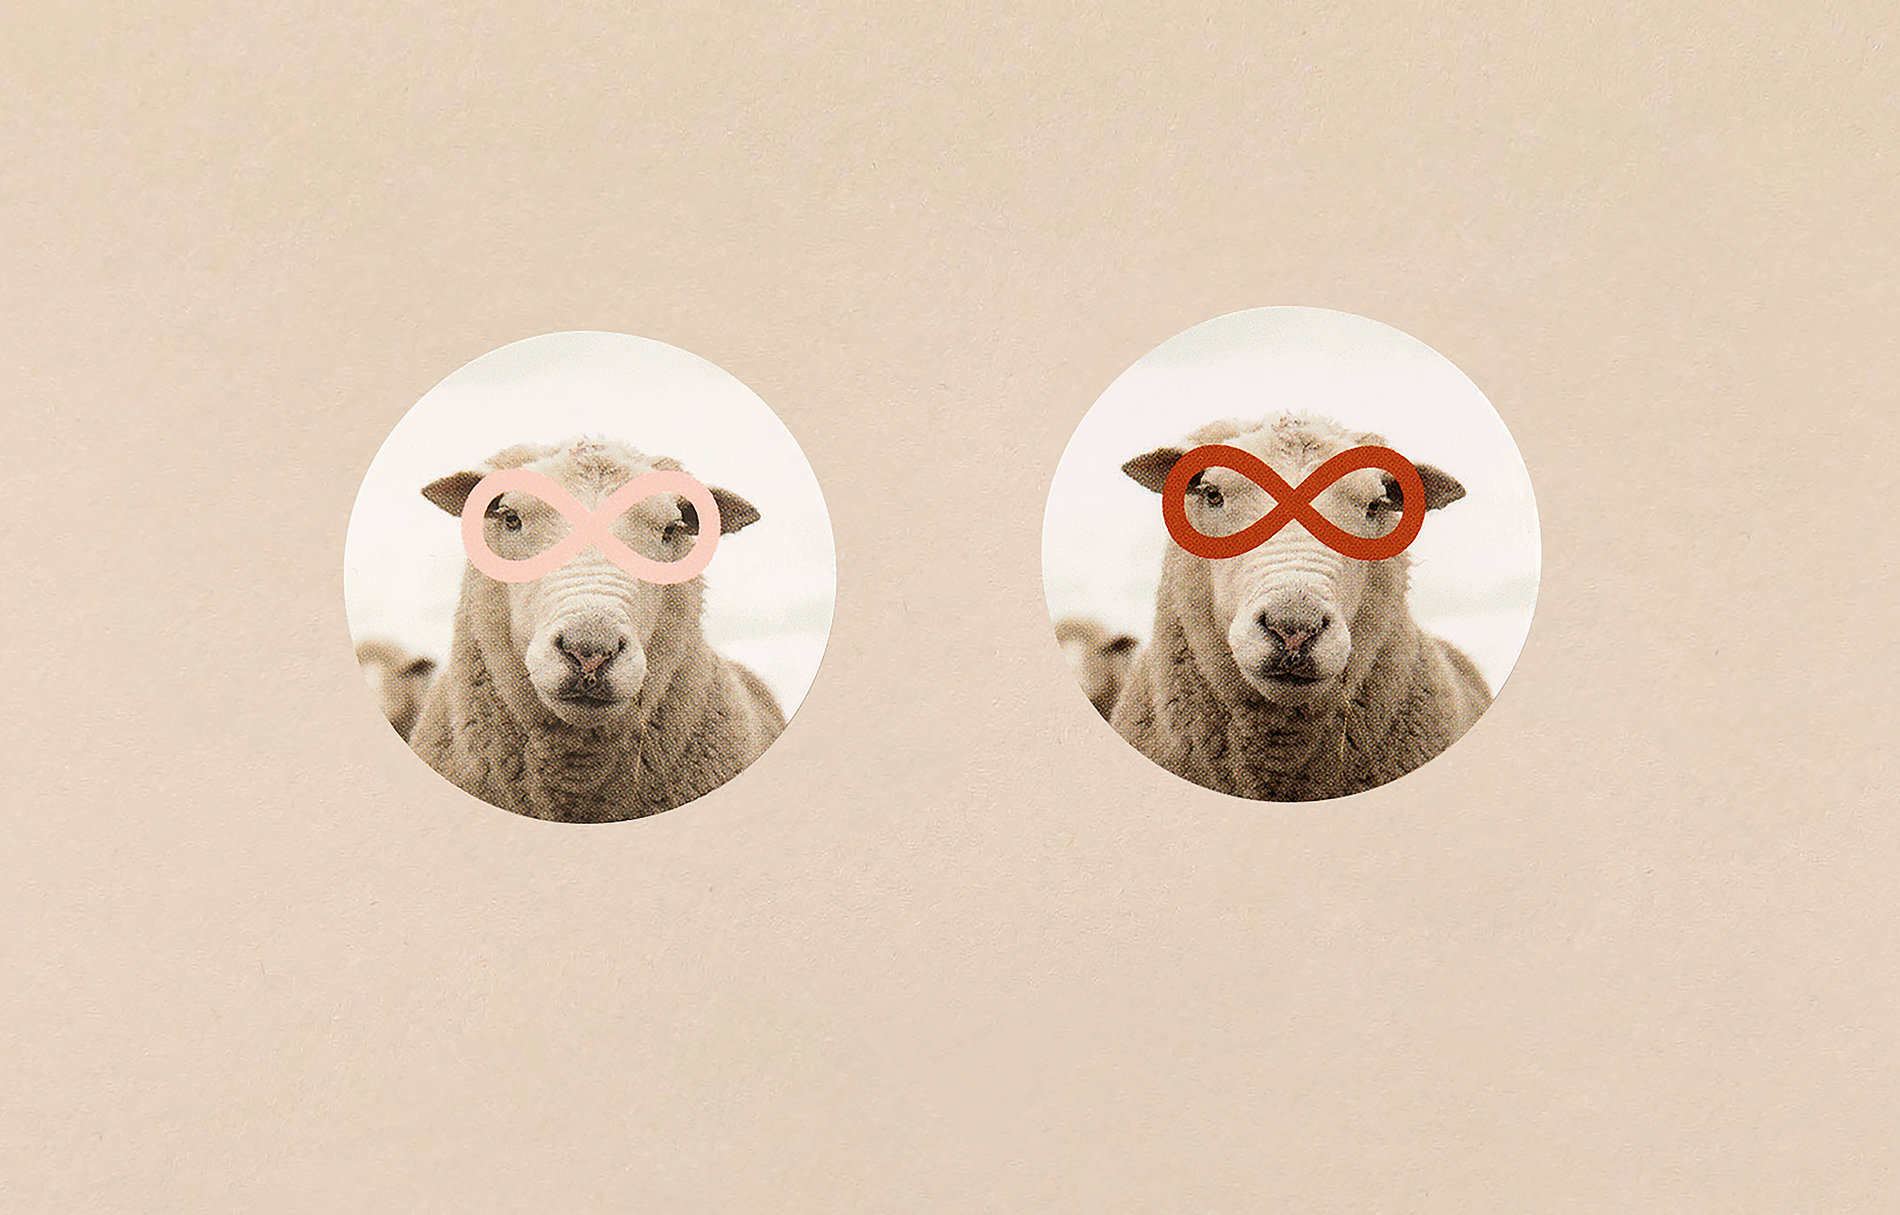 8-Bit-Sheep | Red Dot Design Award